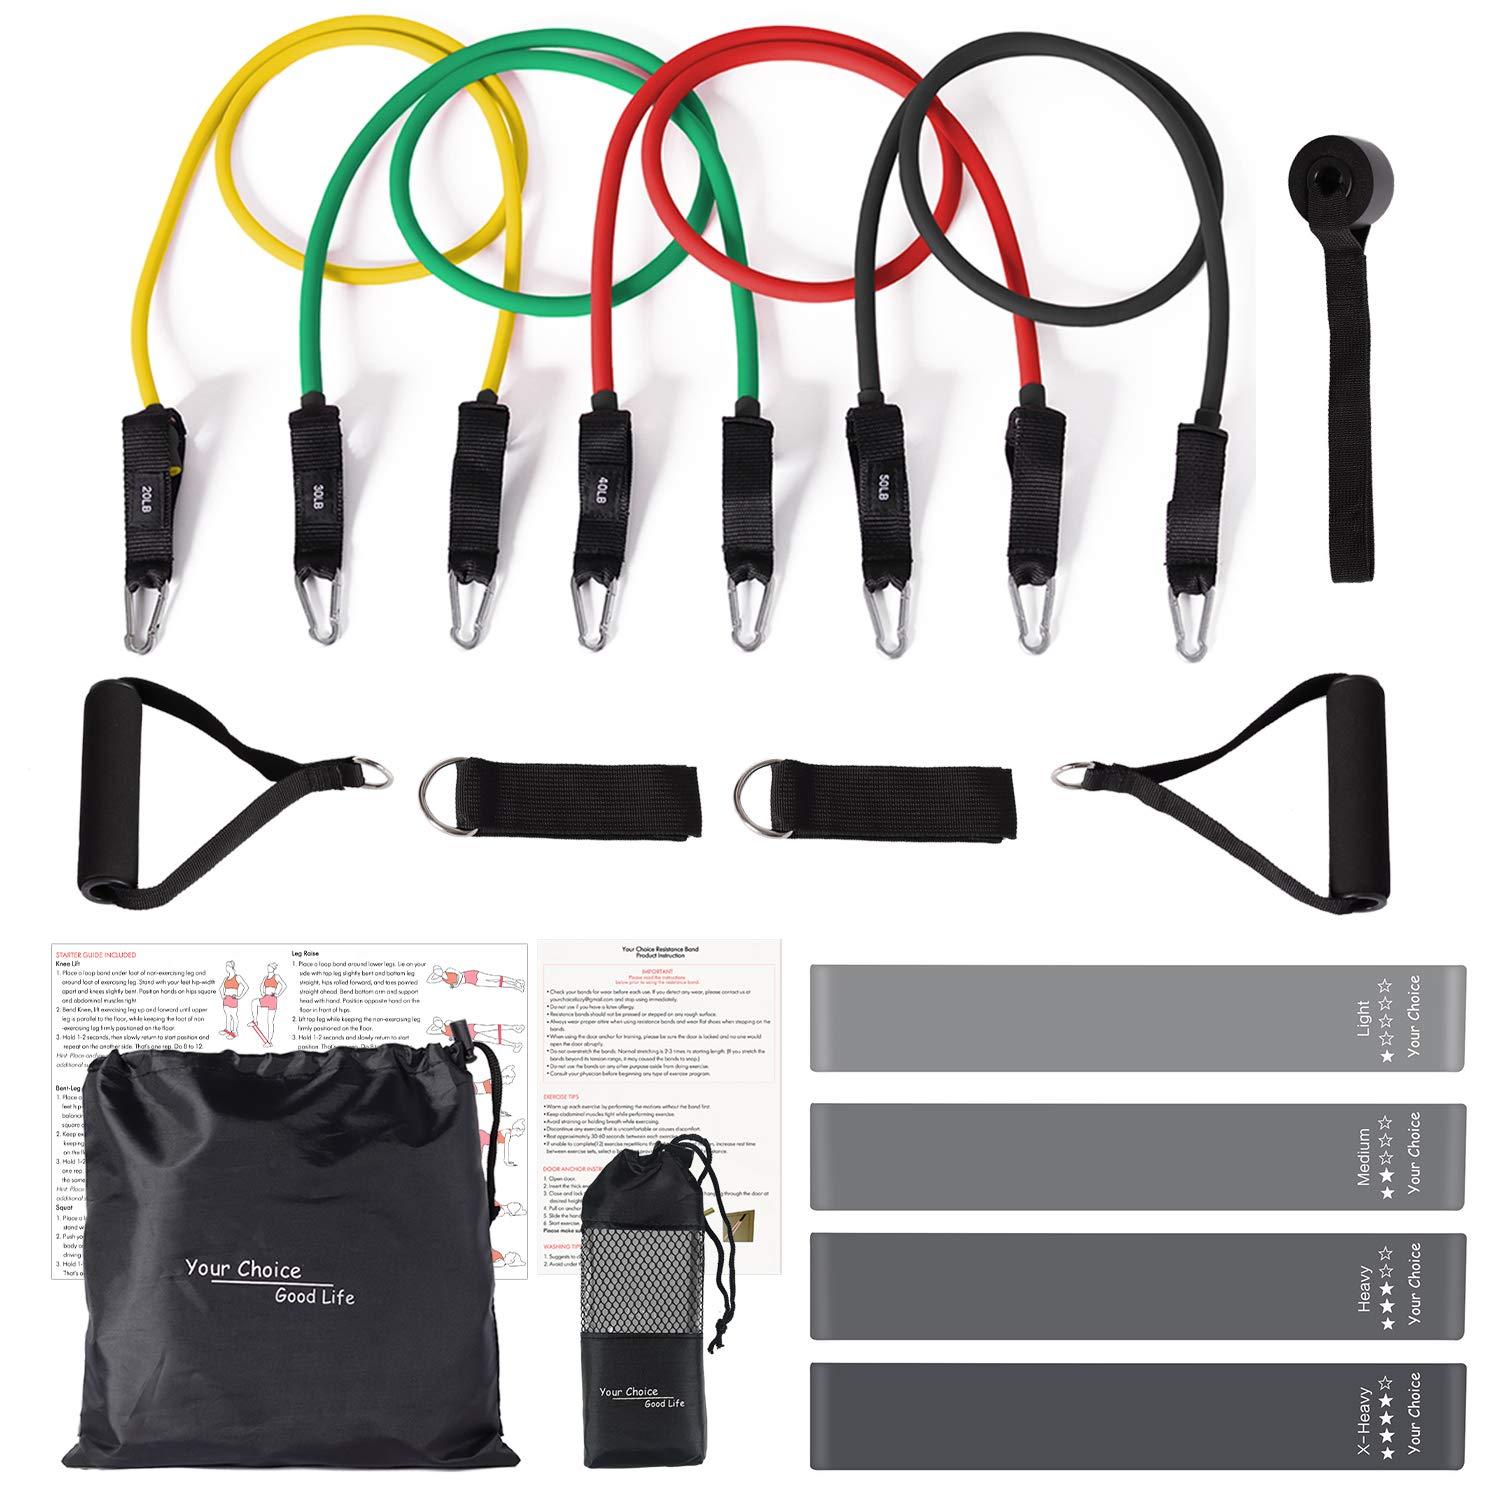 Your Choice 17 pcs Exercise Bands Set with Handle Resistance Bands Tube Workout Bands Fitness Bands for Butt